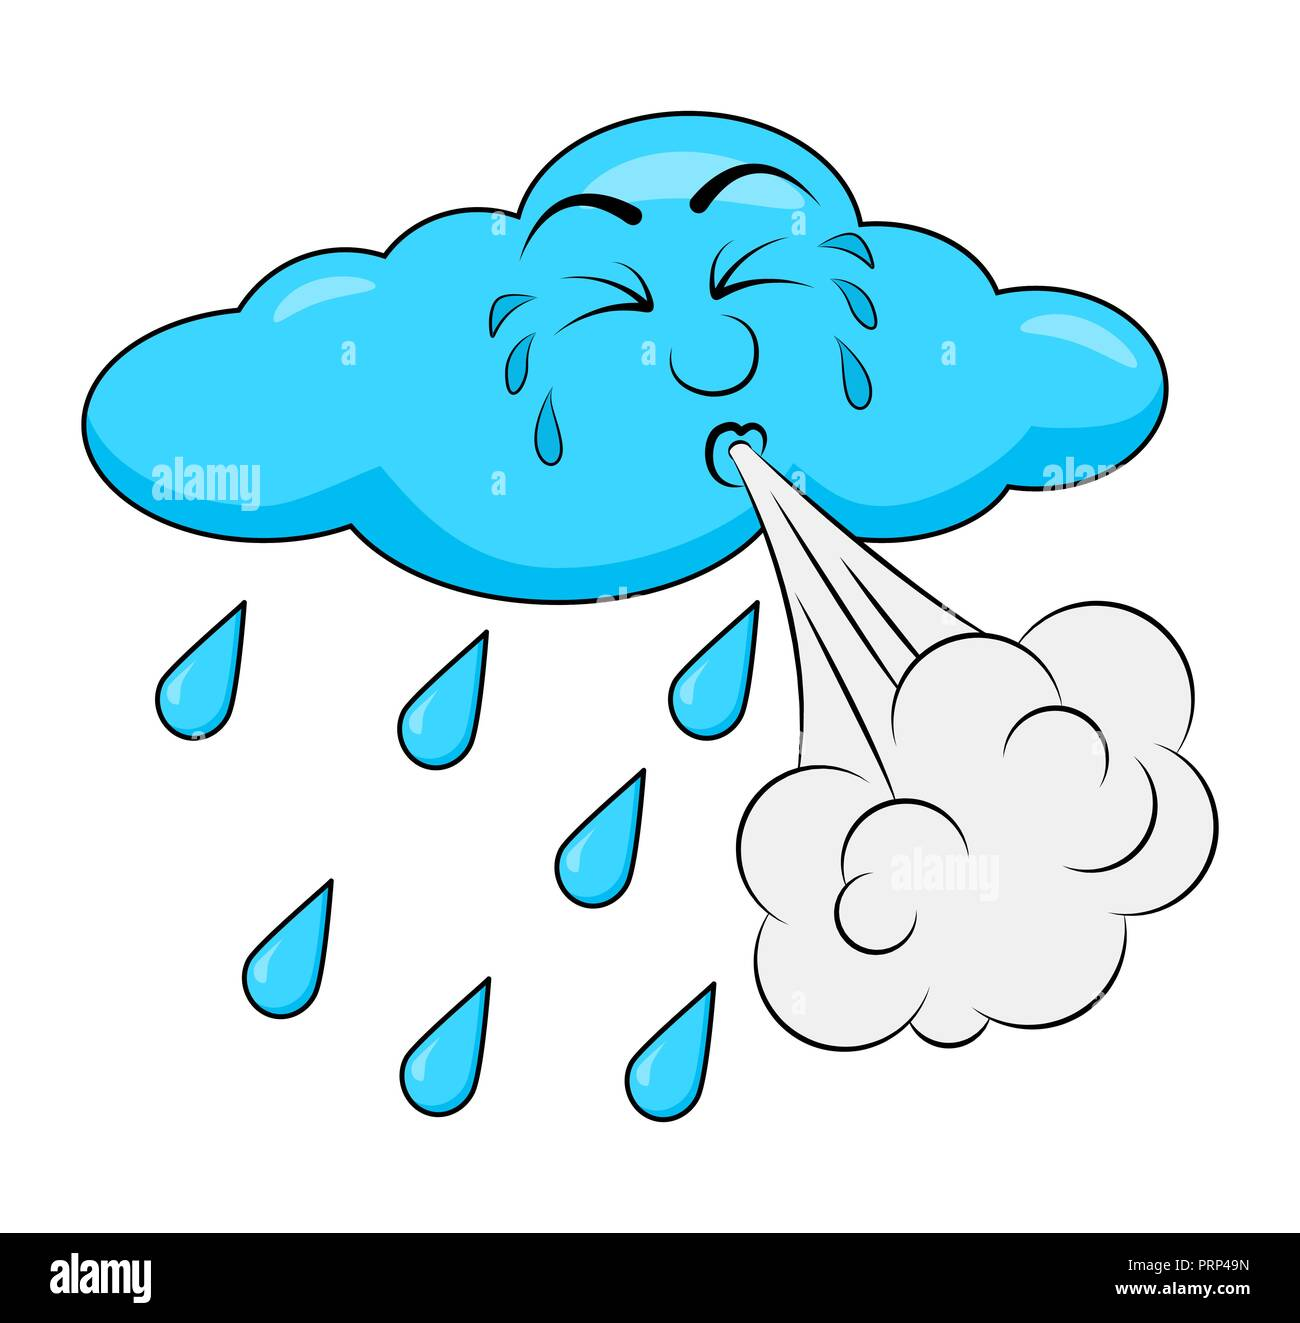 blowing cloud cartoon design isolated on white background - Stock Vector